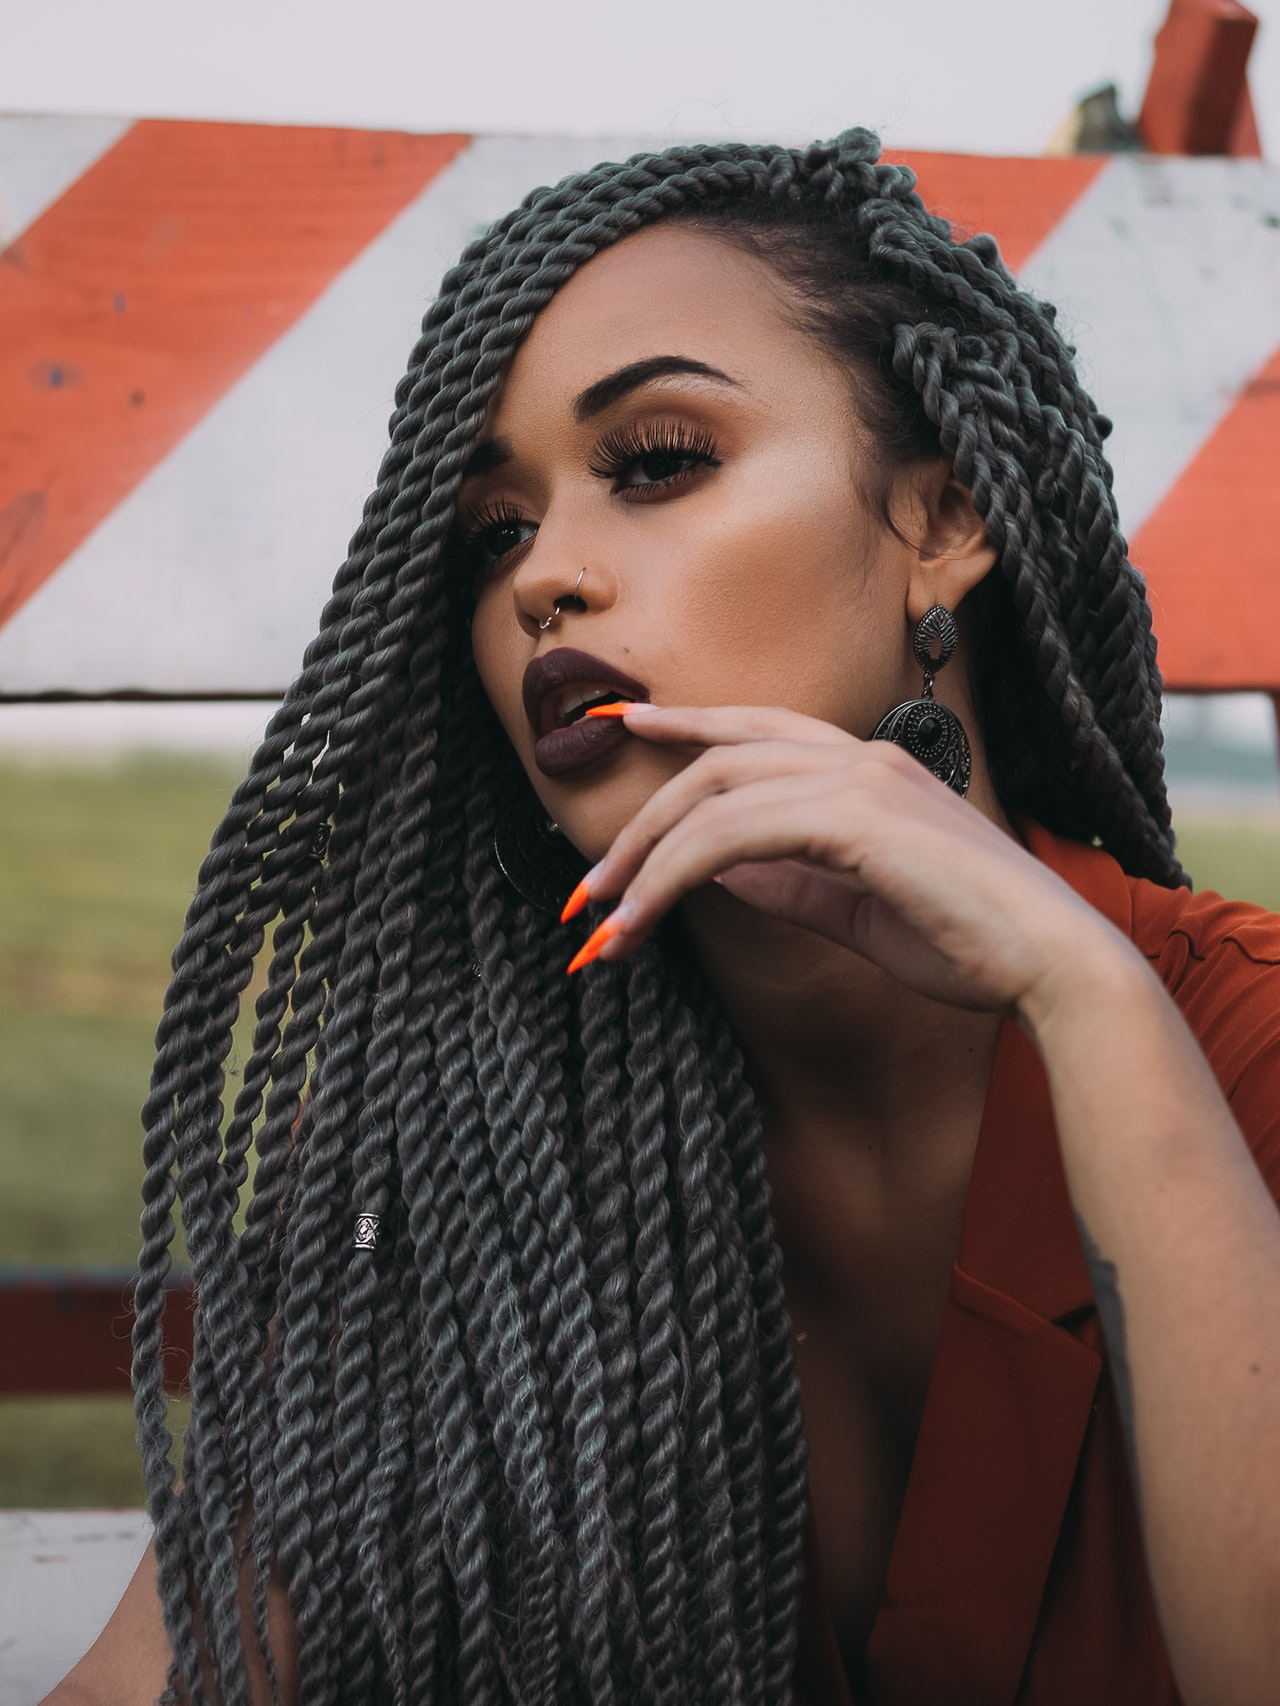 woman with orange nails and grey braids